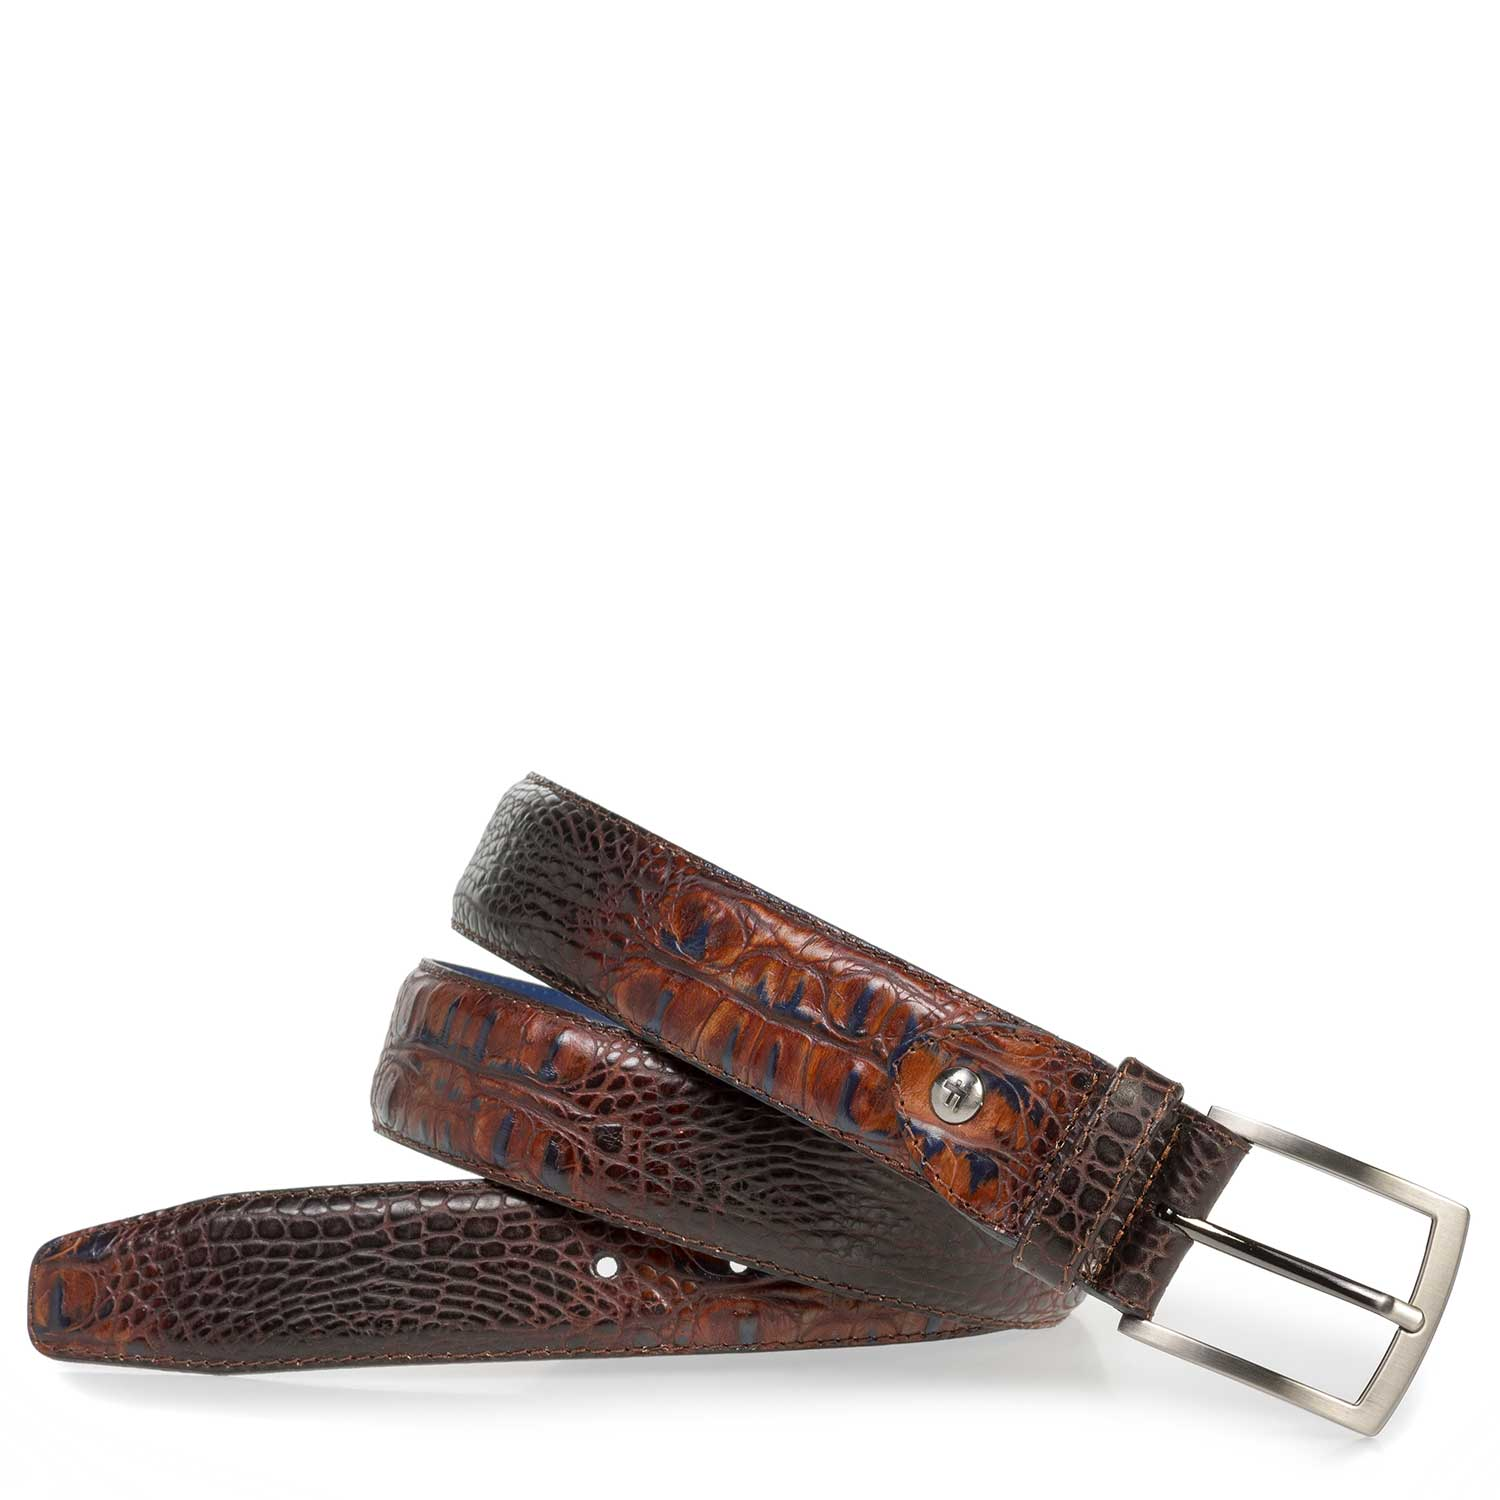 75201/32 - Cognac-coloured leather belt with croco print